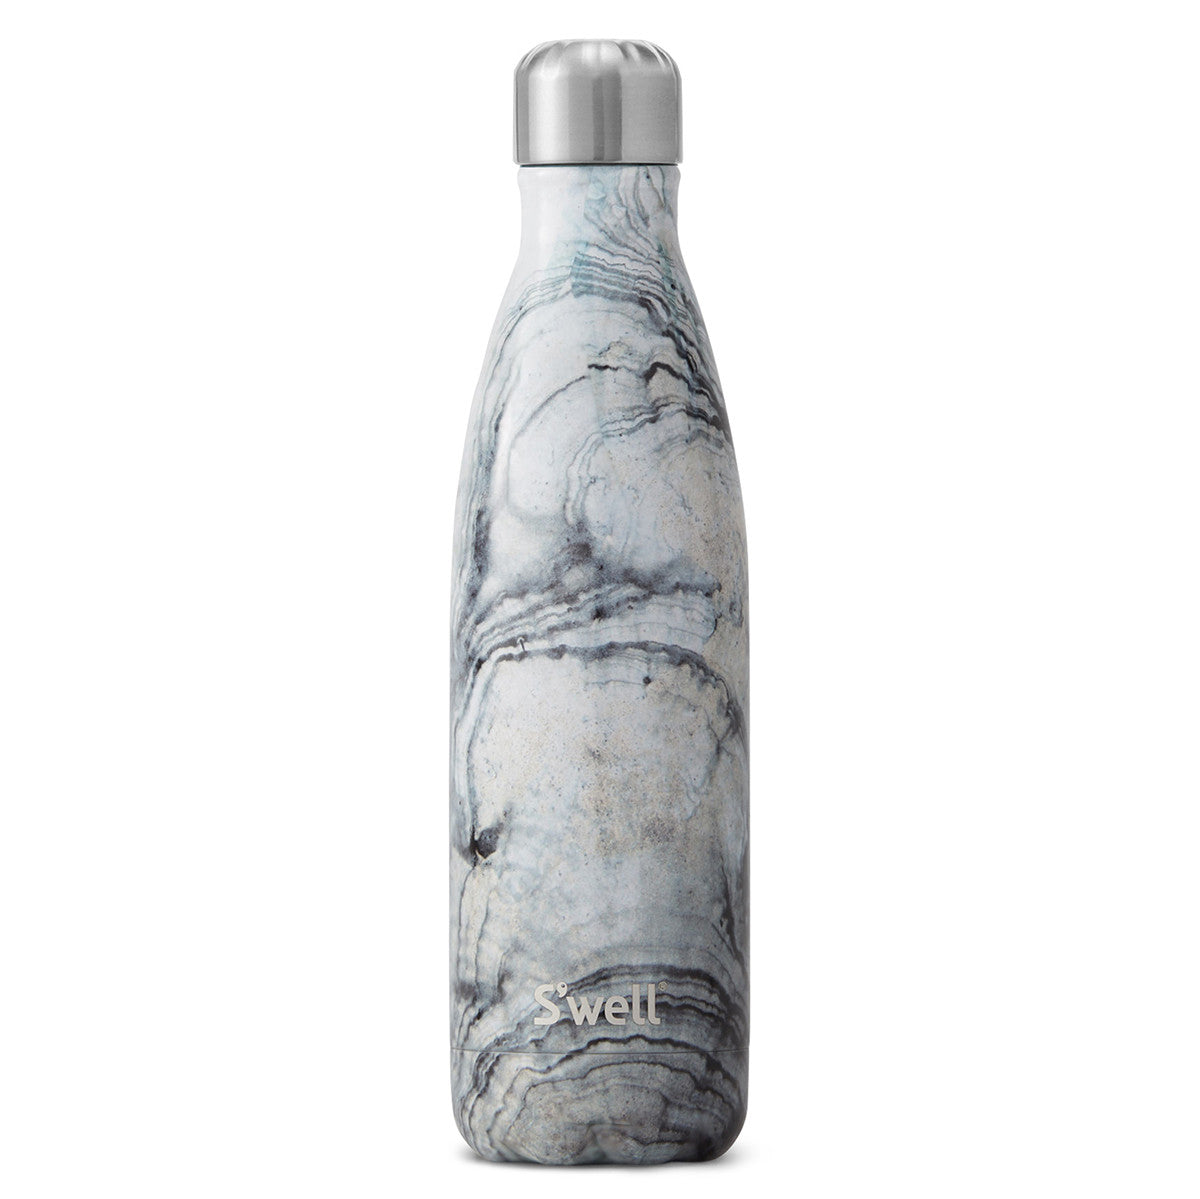 S'well Bottle - Elements collection - Sandstone, 500ml